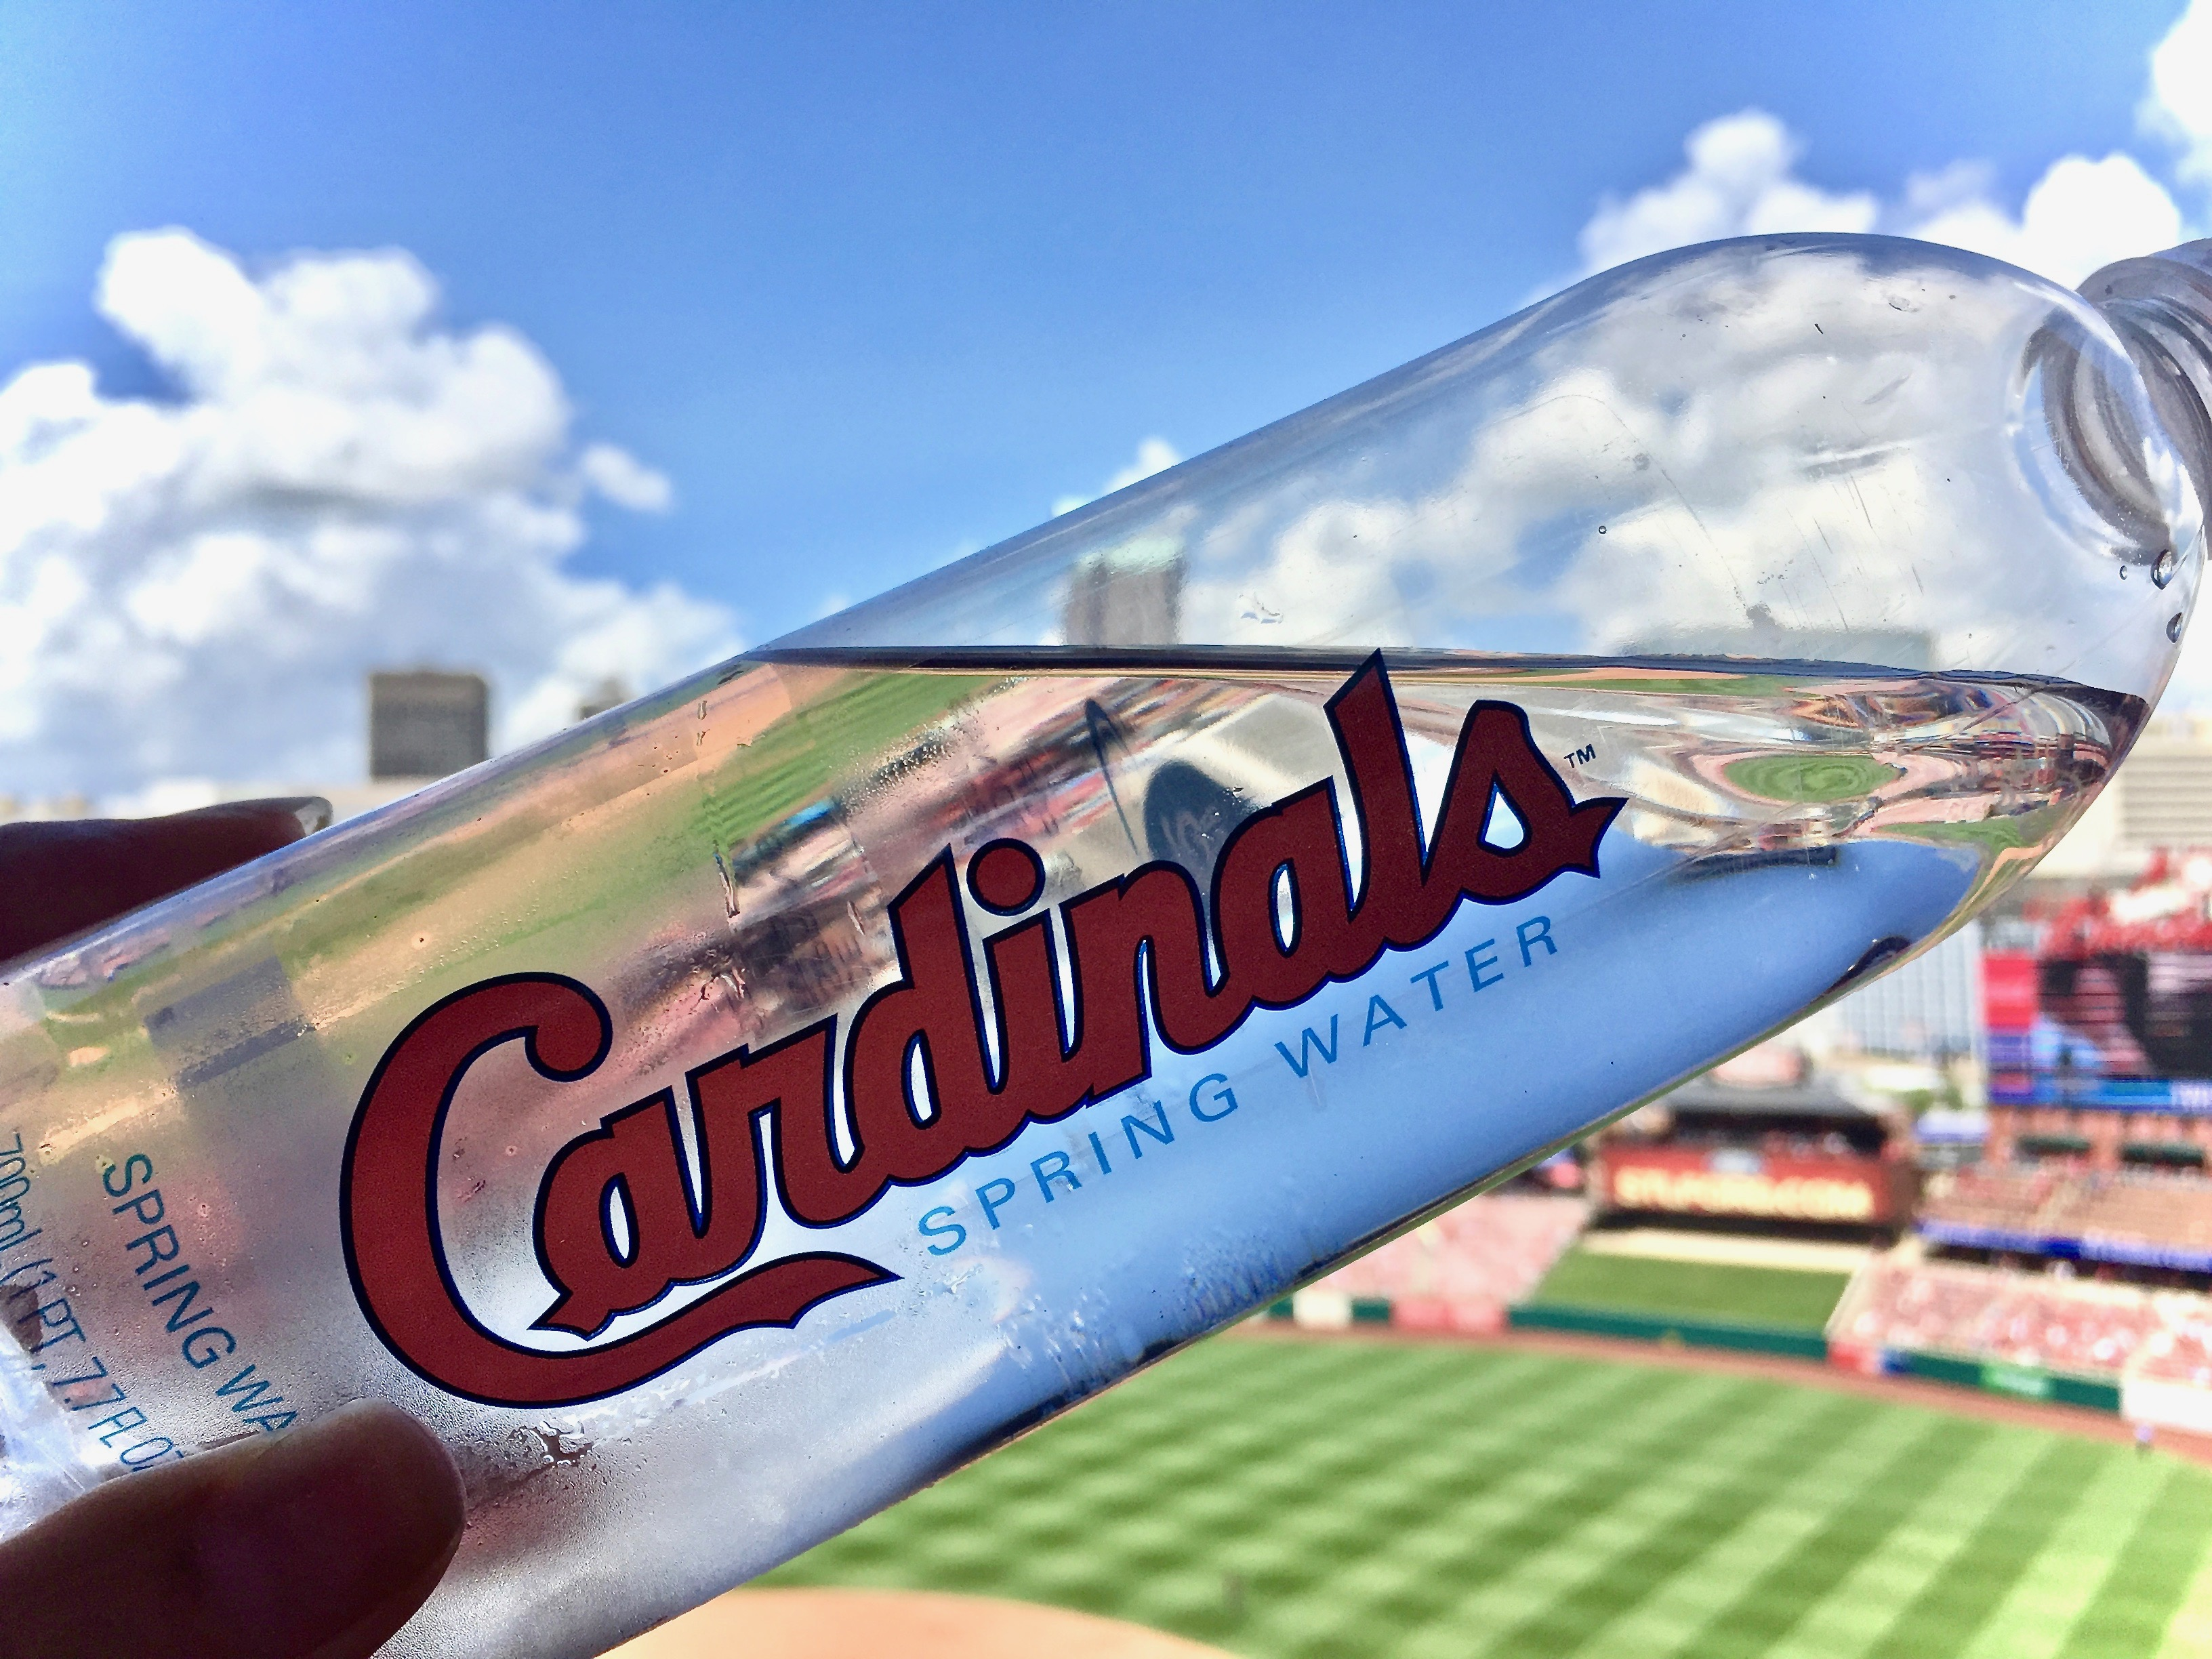 Photo of water bottle at MLB baseball ballpark - Take Me Out To The Ballgame... But Don't Take All My Money